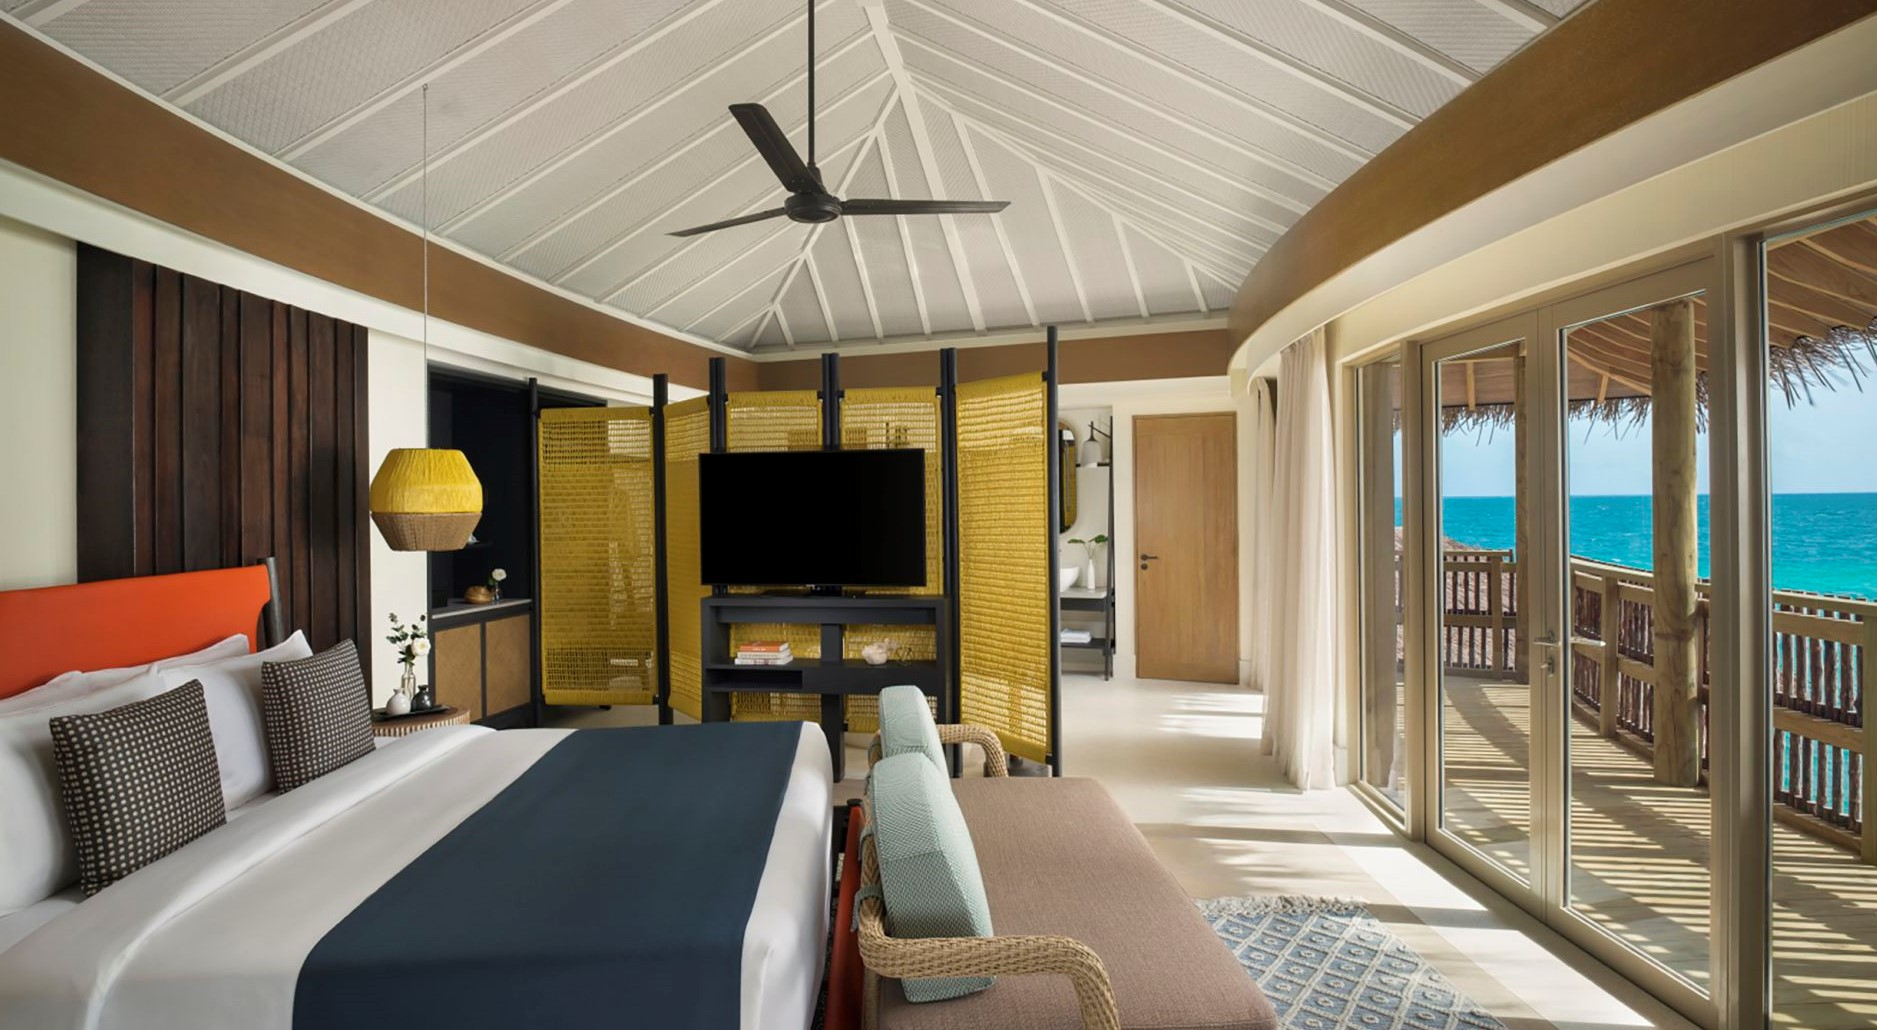 InterContinental Maldives 3 Bedroom Overwater Residence 2